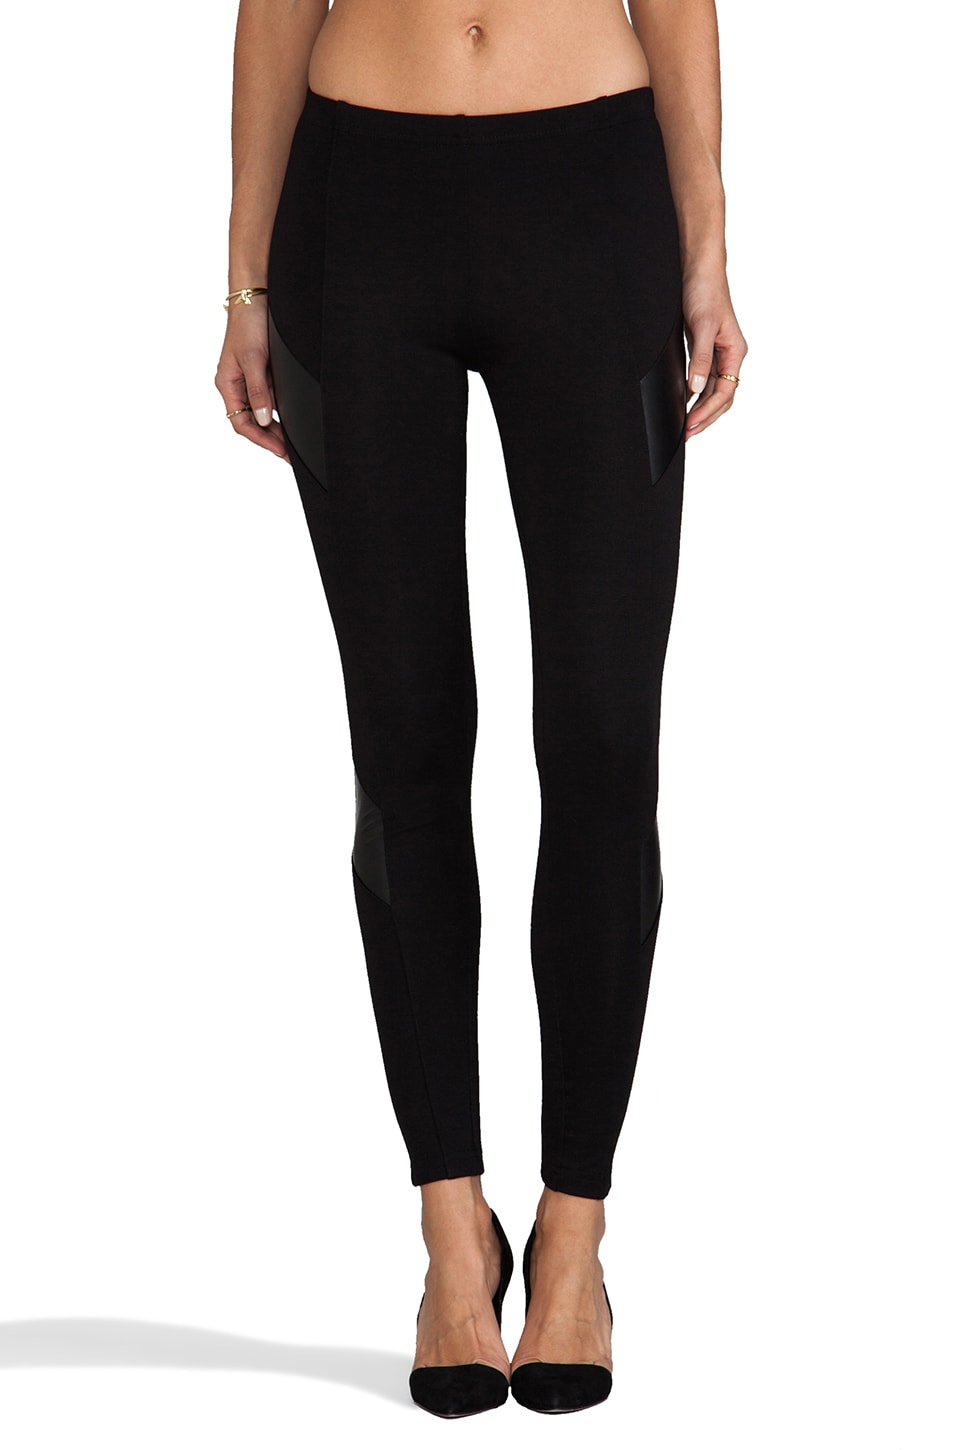 Amanda Uprichard Ponti/Vegan Leather Legging in Black